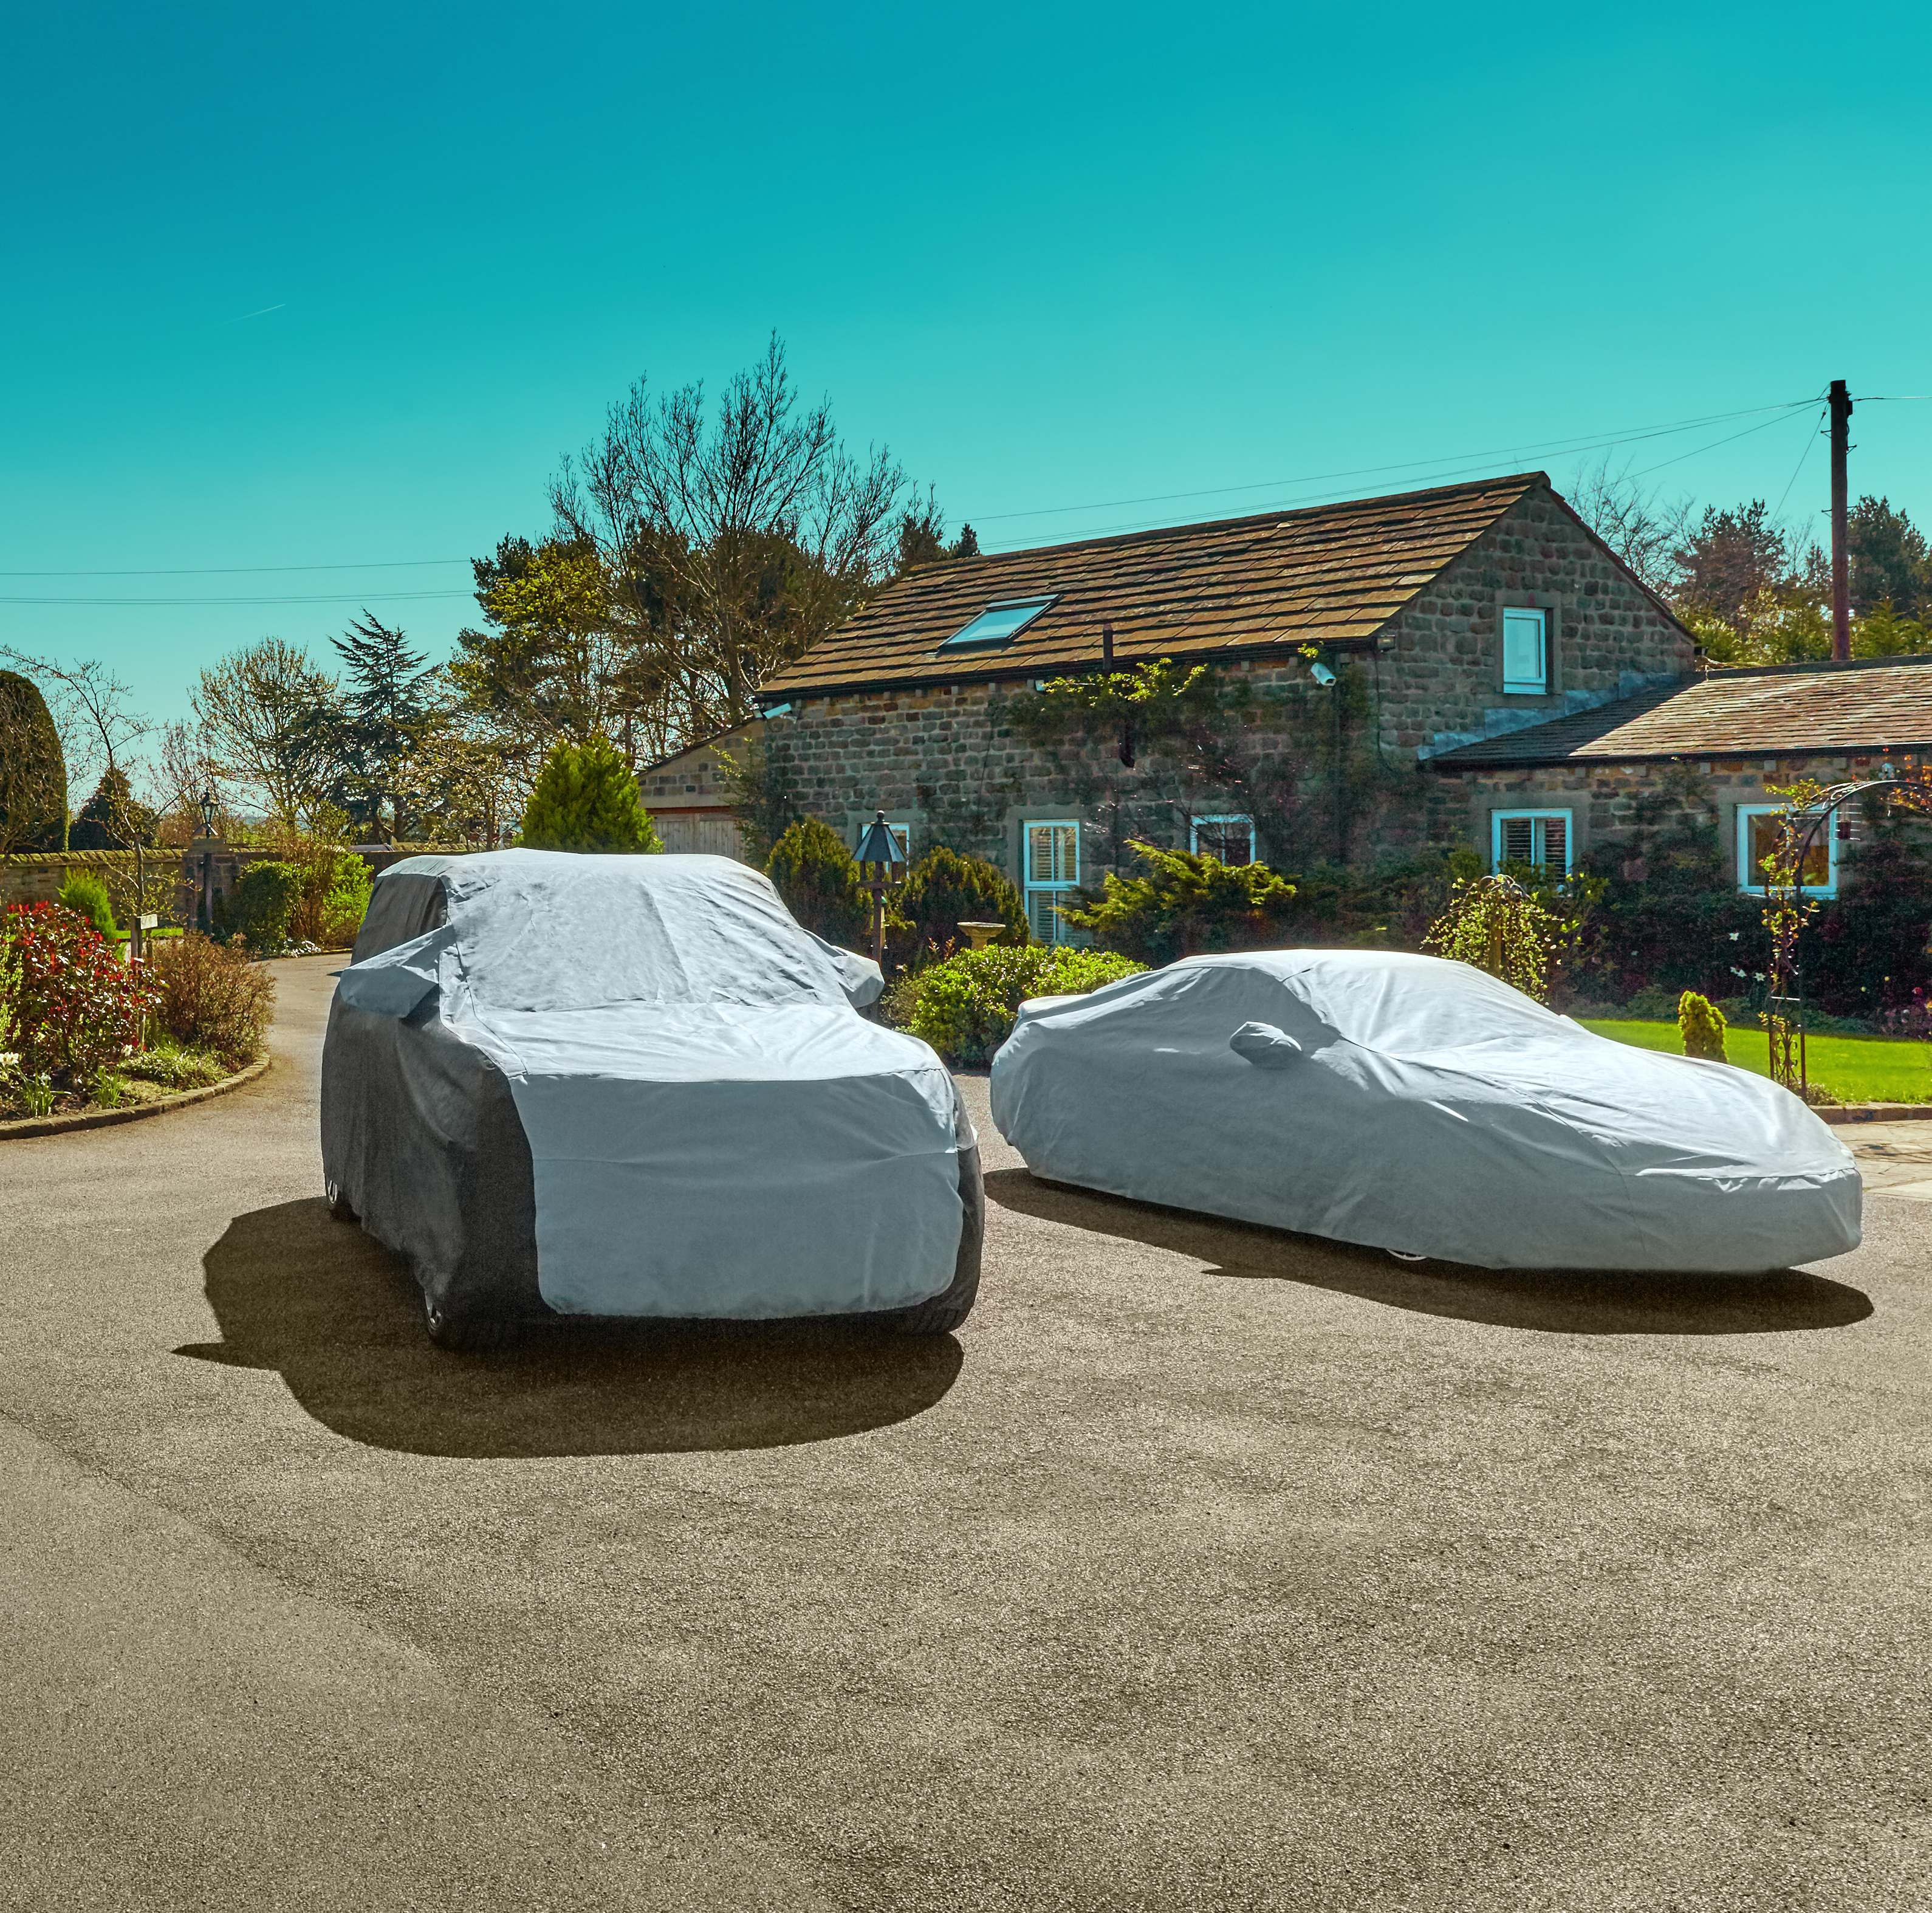 Stormshield+ and Stormshield Outdoor Car Covers